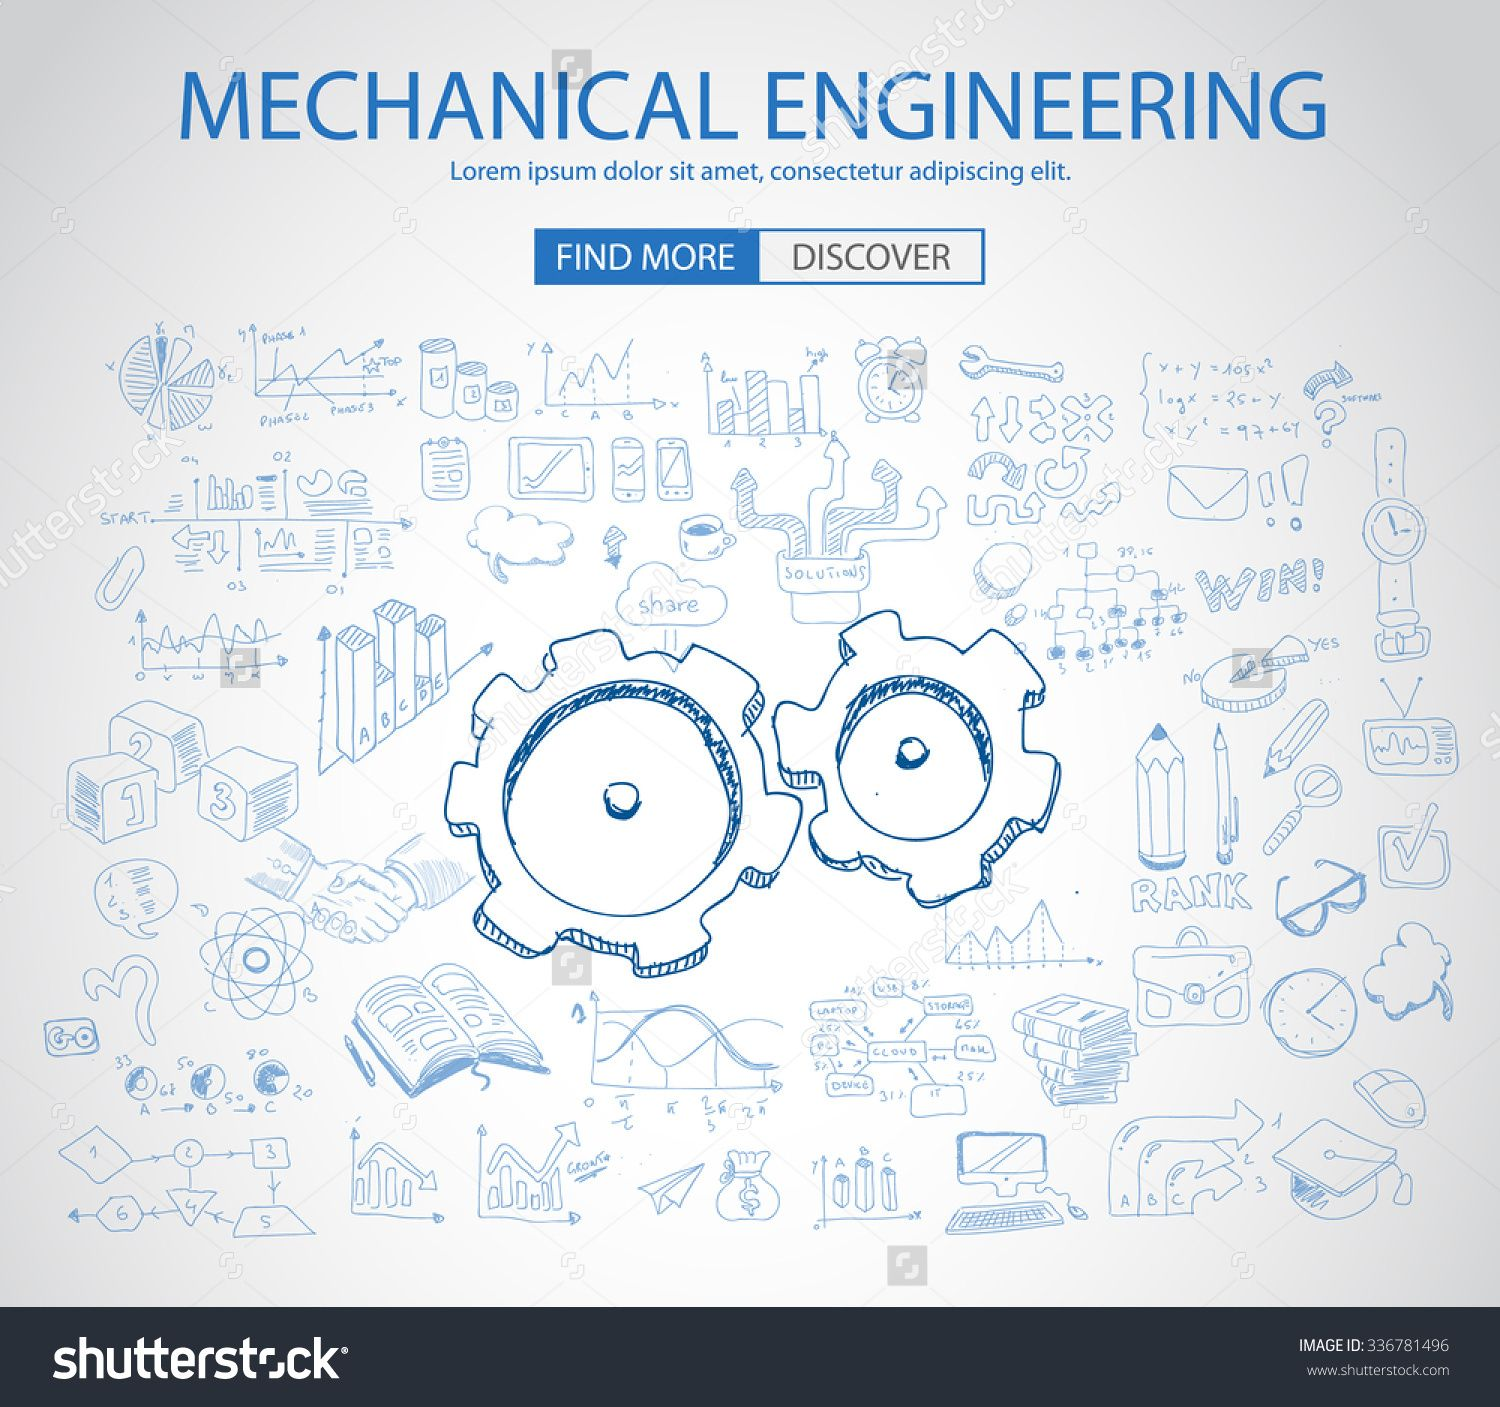 Mechanical Engineering Concept With Doodle Design Style Physics Solution Re Engineering Parts Design Modern St Doodle Designs Engineering Poster Book Design